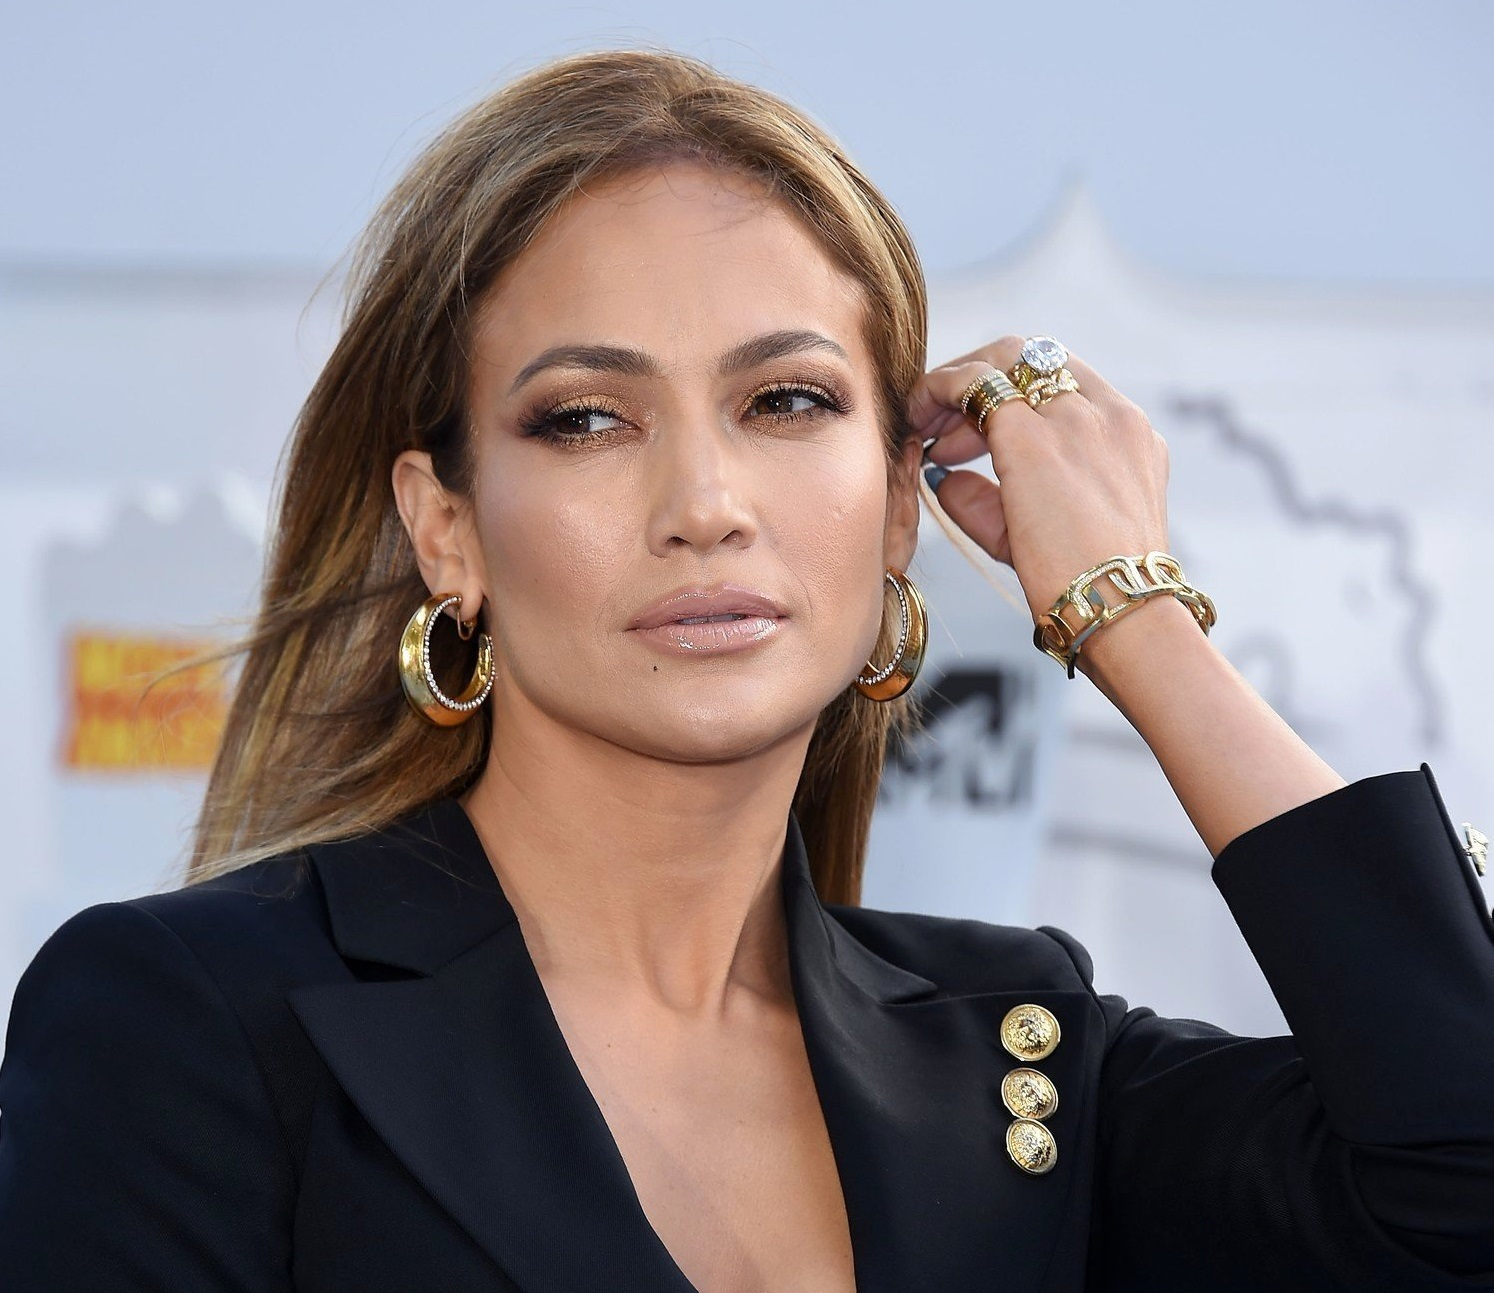 April 12, 2015 - Los Angeles, California, U.S. - Jennifer Lopez arrives for the 2015 MTV Movie Awards at the Nokia theater. (Credit Image: © Lisa O'Connor/ZUMA Wire)